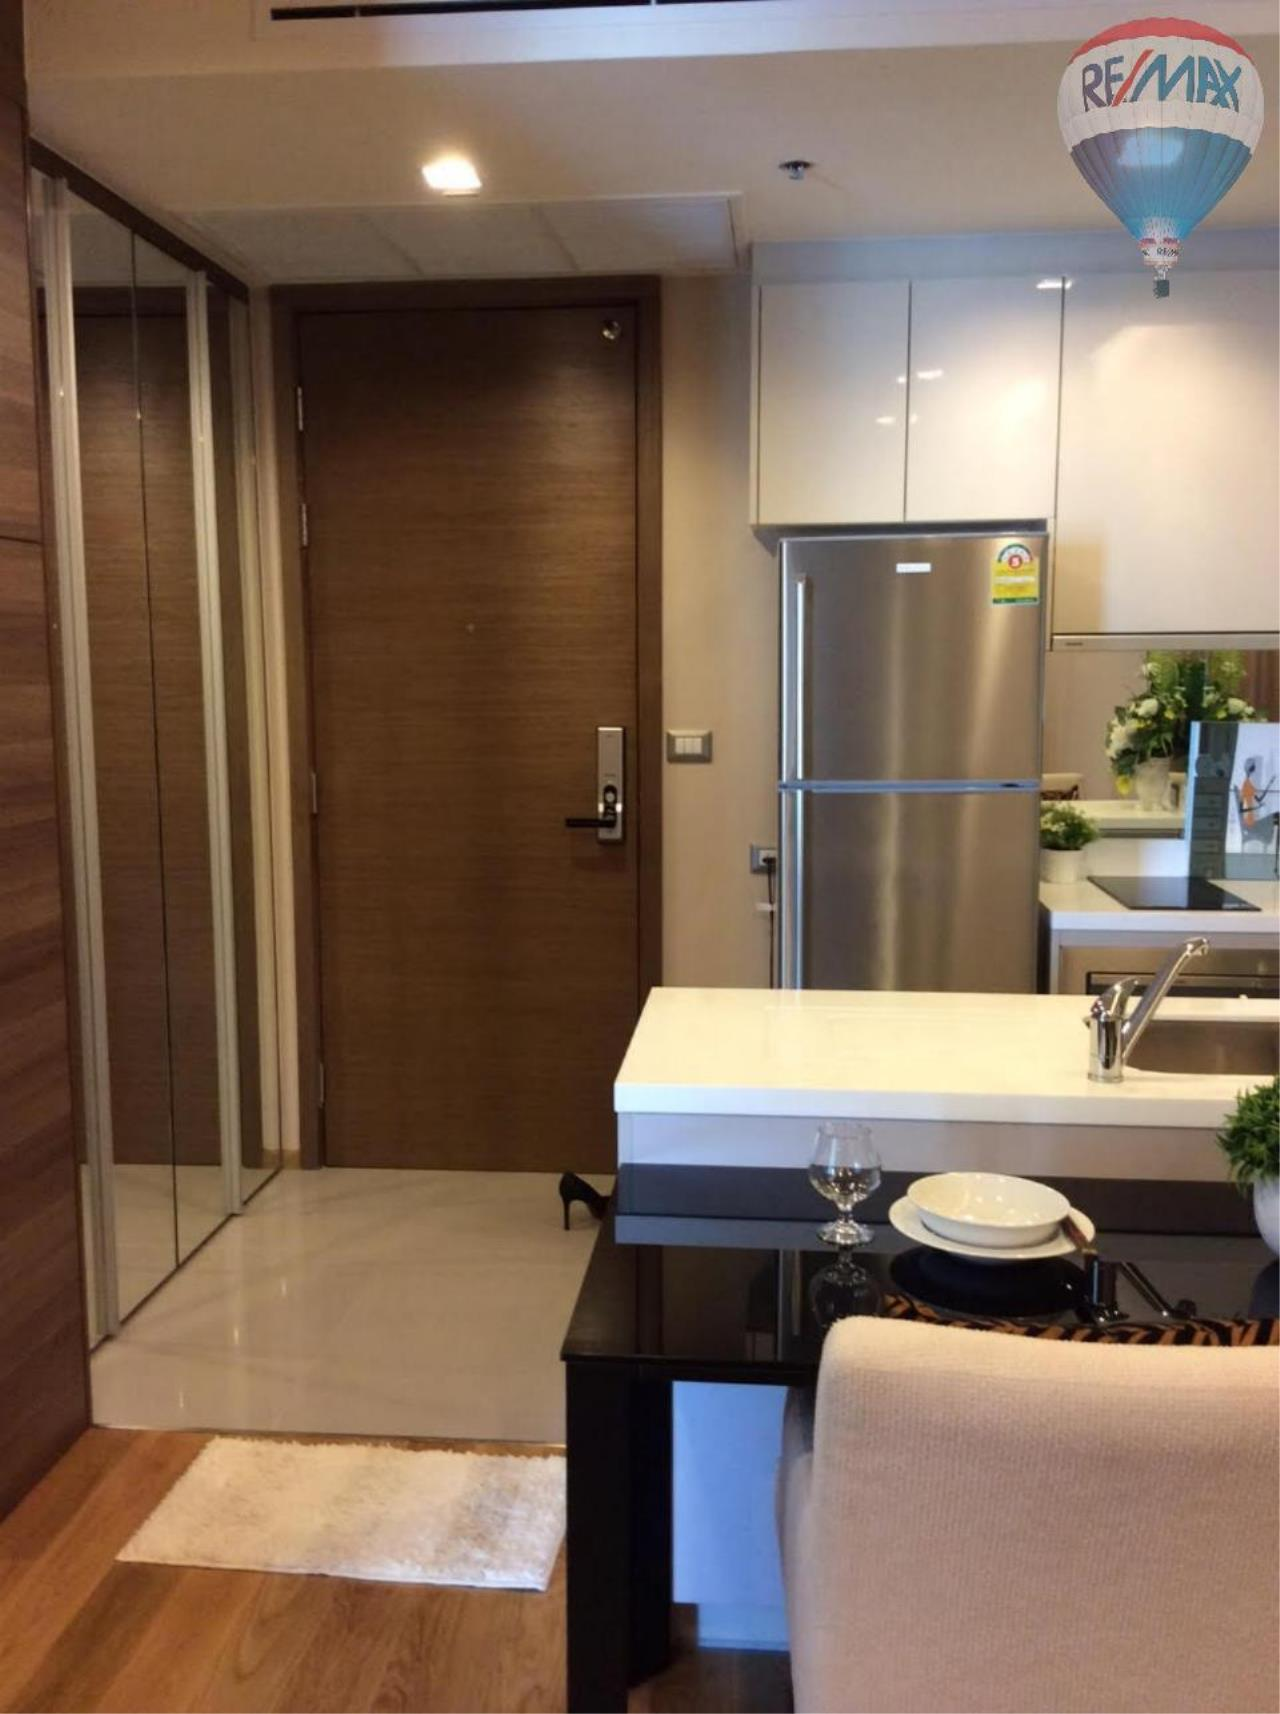 RE/MAX Properties Agency's 1 Bedroom 46.5 Sq.M. for sale in The Address Sathorn 4